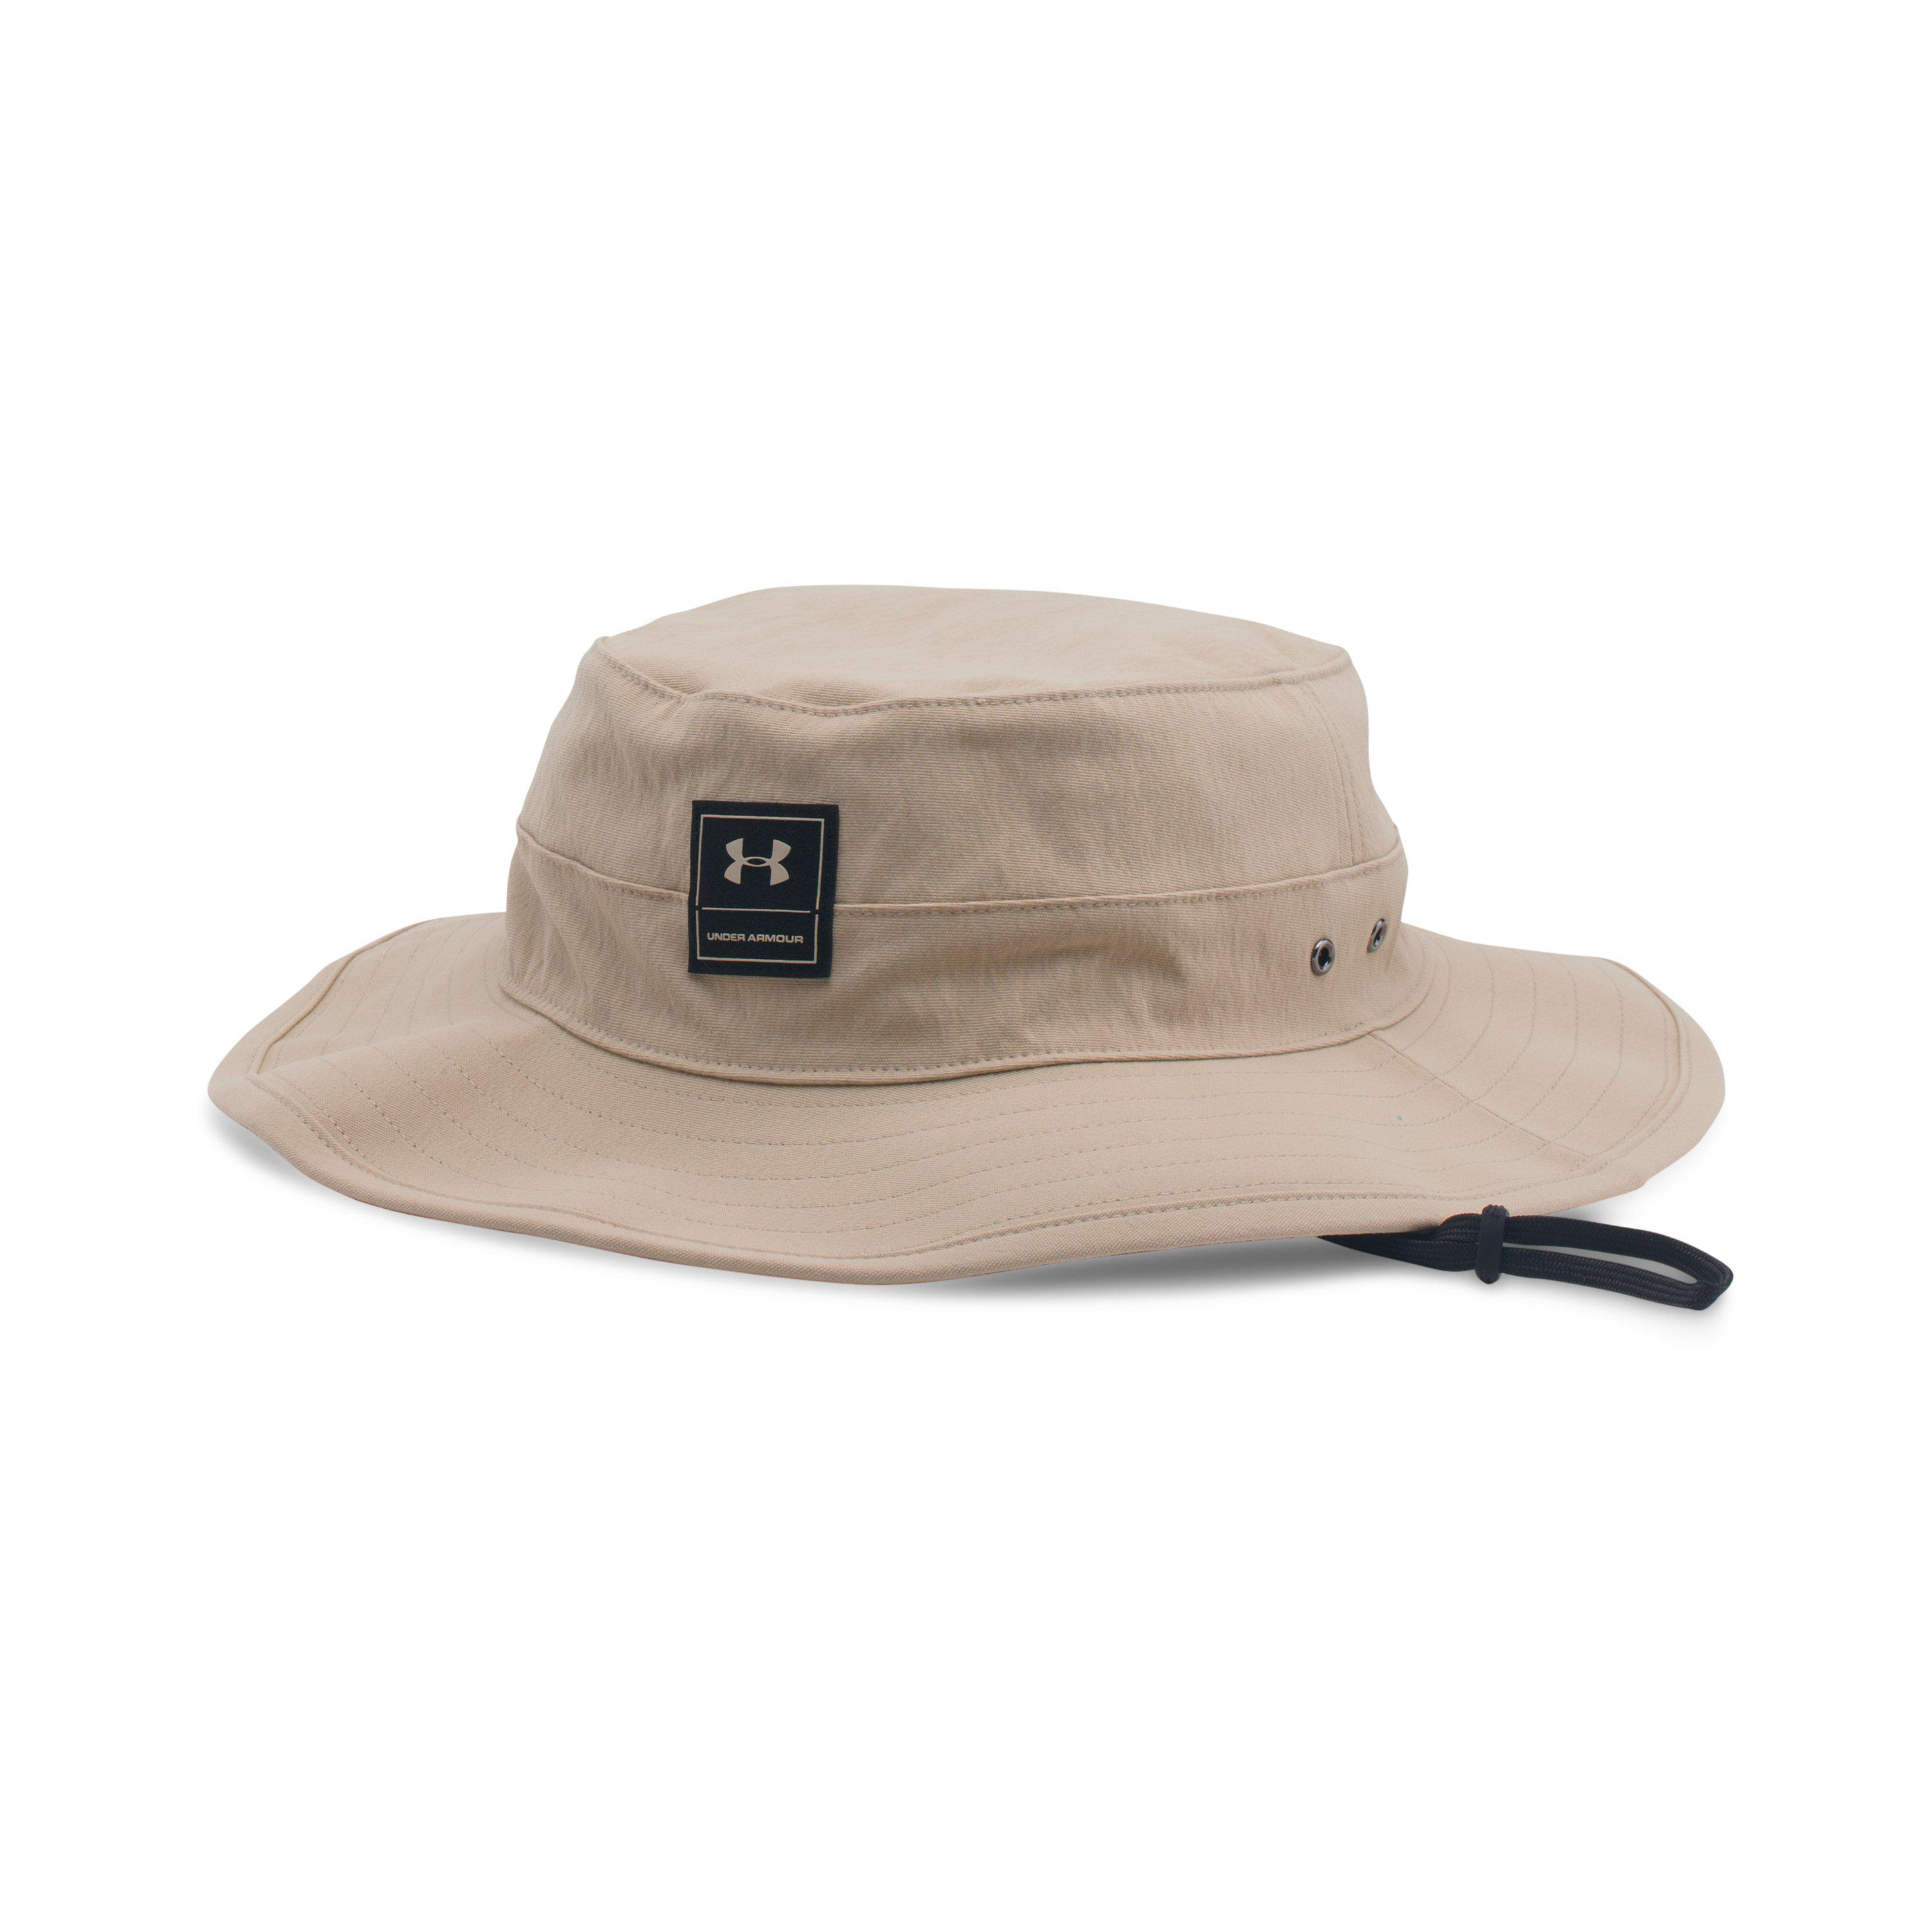 c81578c10cf Lyst - Under Armour Men s Ua Training Bucket Hat in Natural for Men